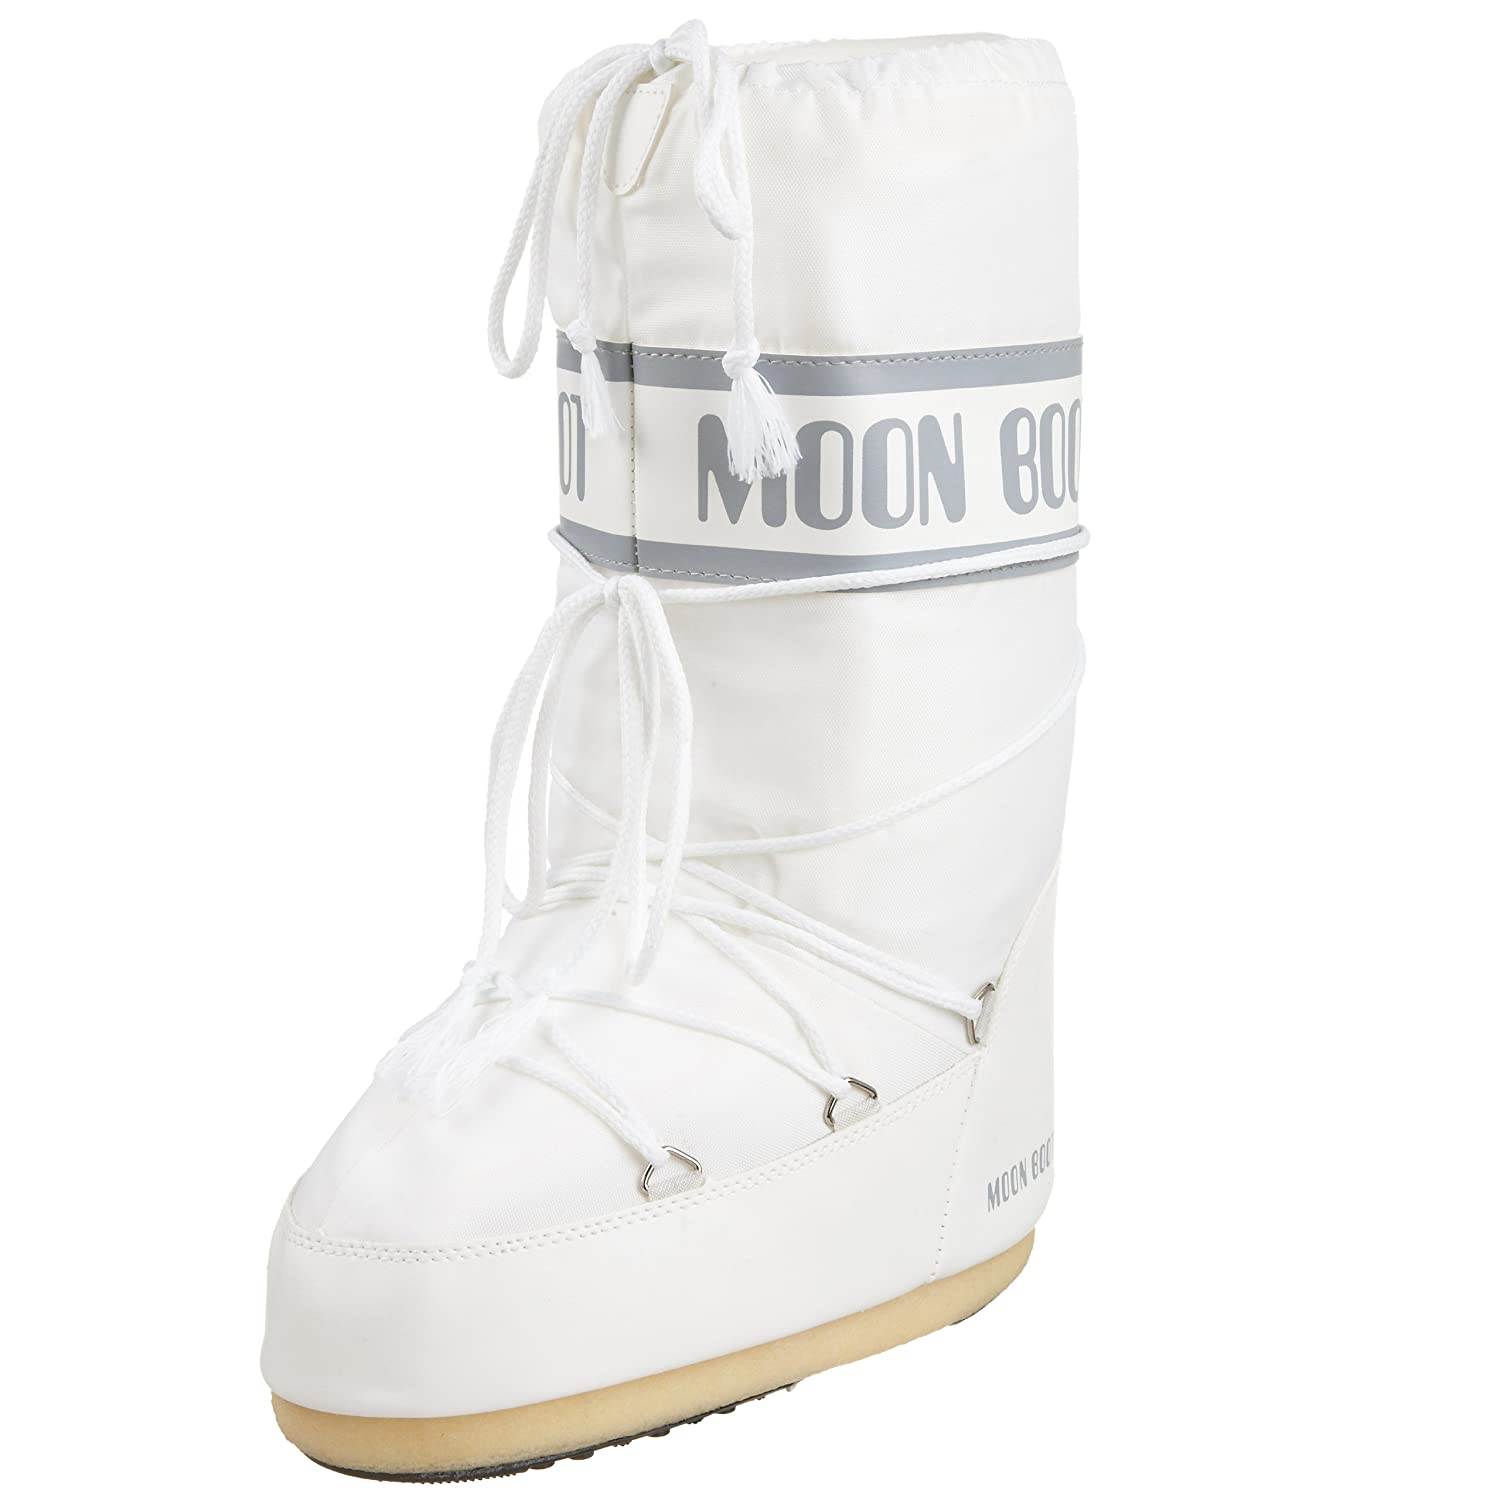 Moon Boot Nylon 14004400 - Bottes Enfant 14004400 Blanco de Neige - Mixte Enfant Blanco (Wei? 6) e09bf64 - fast-weightloss-diet.space